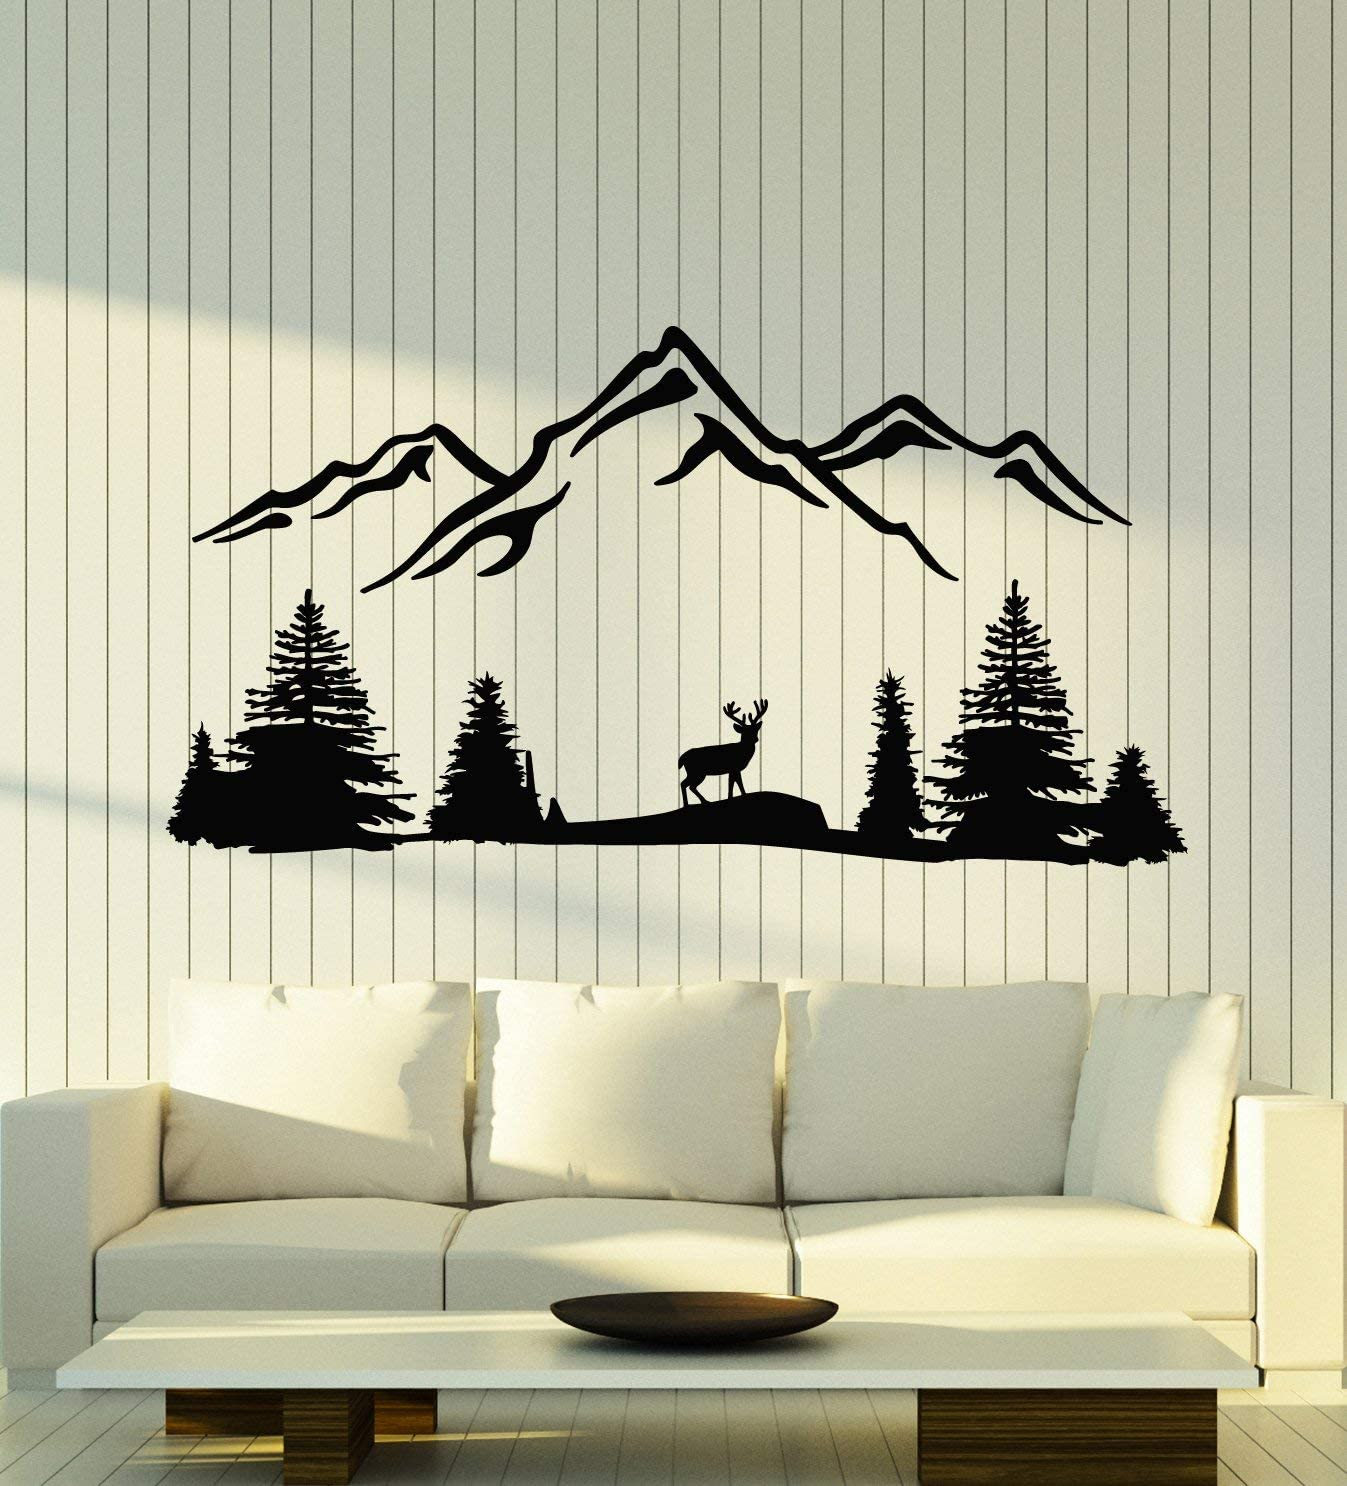 Vinyl Wall Decal Deer Mountains Wildlife Trees Beauty Nature Stickers Mural Large Decor (g1979) Black